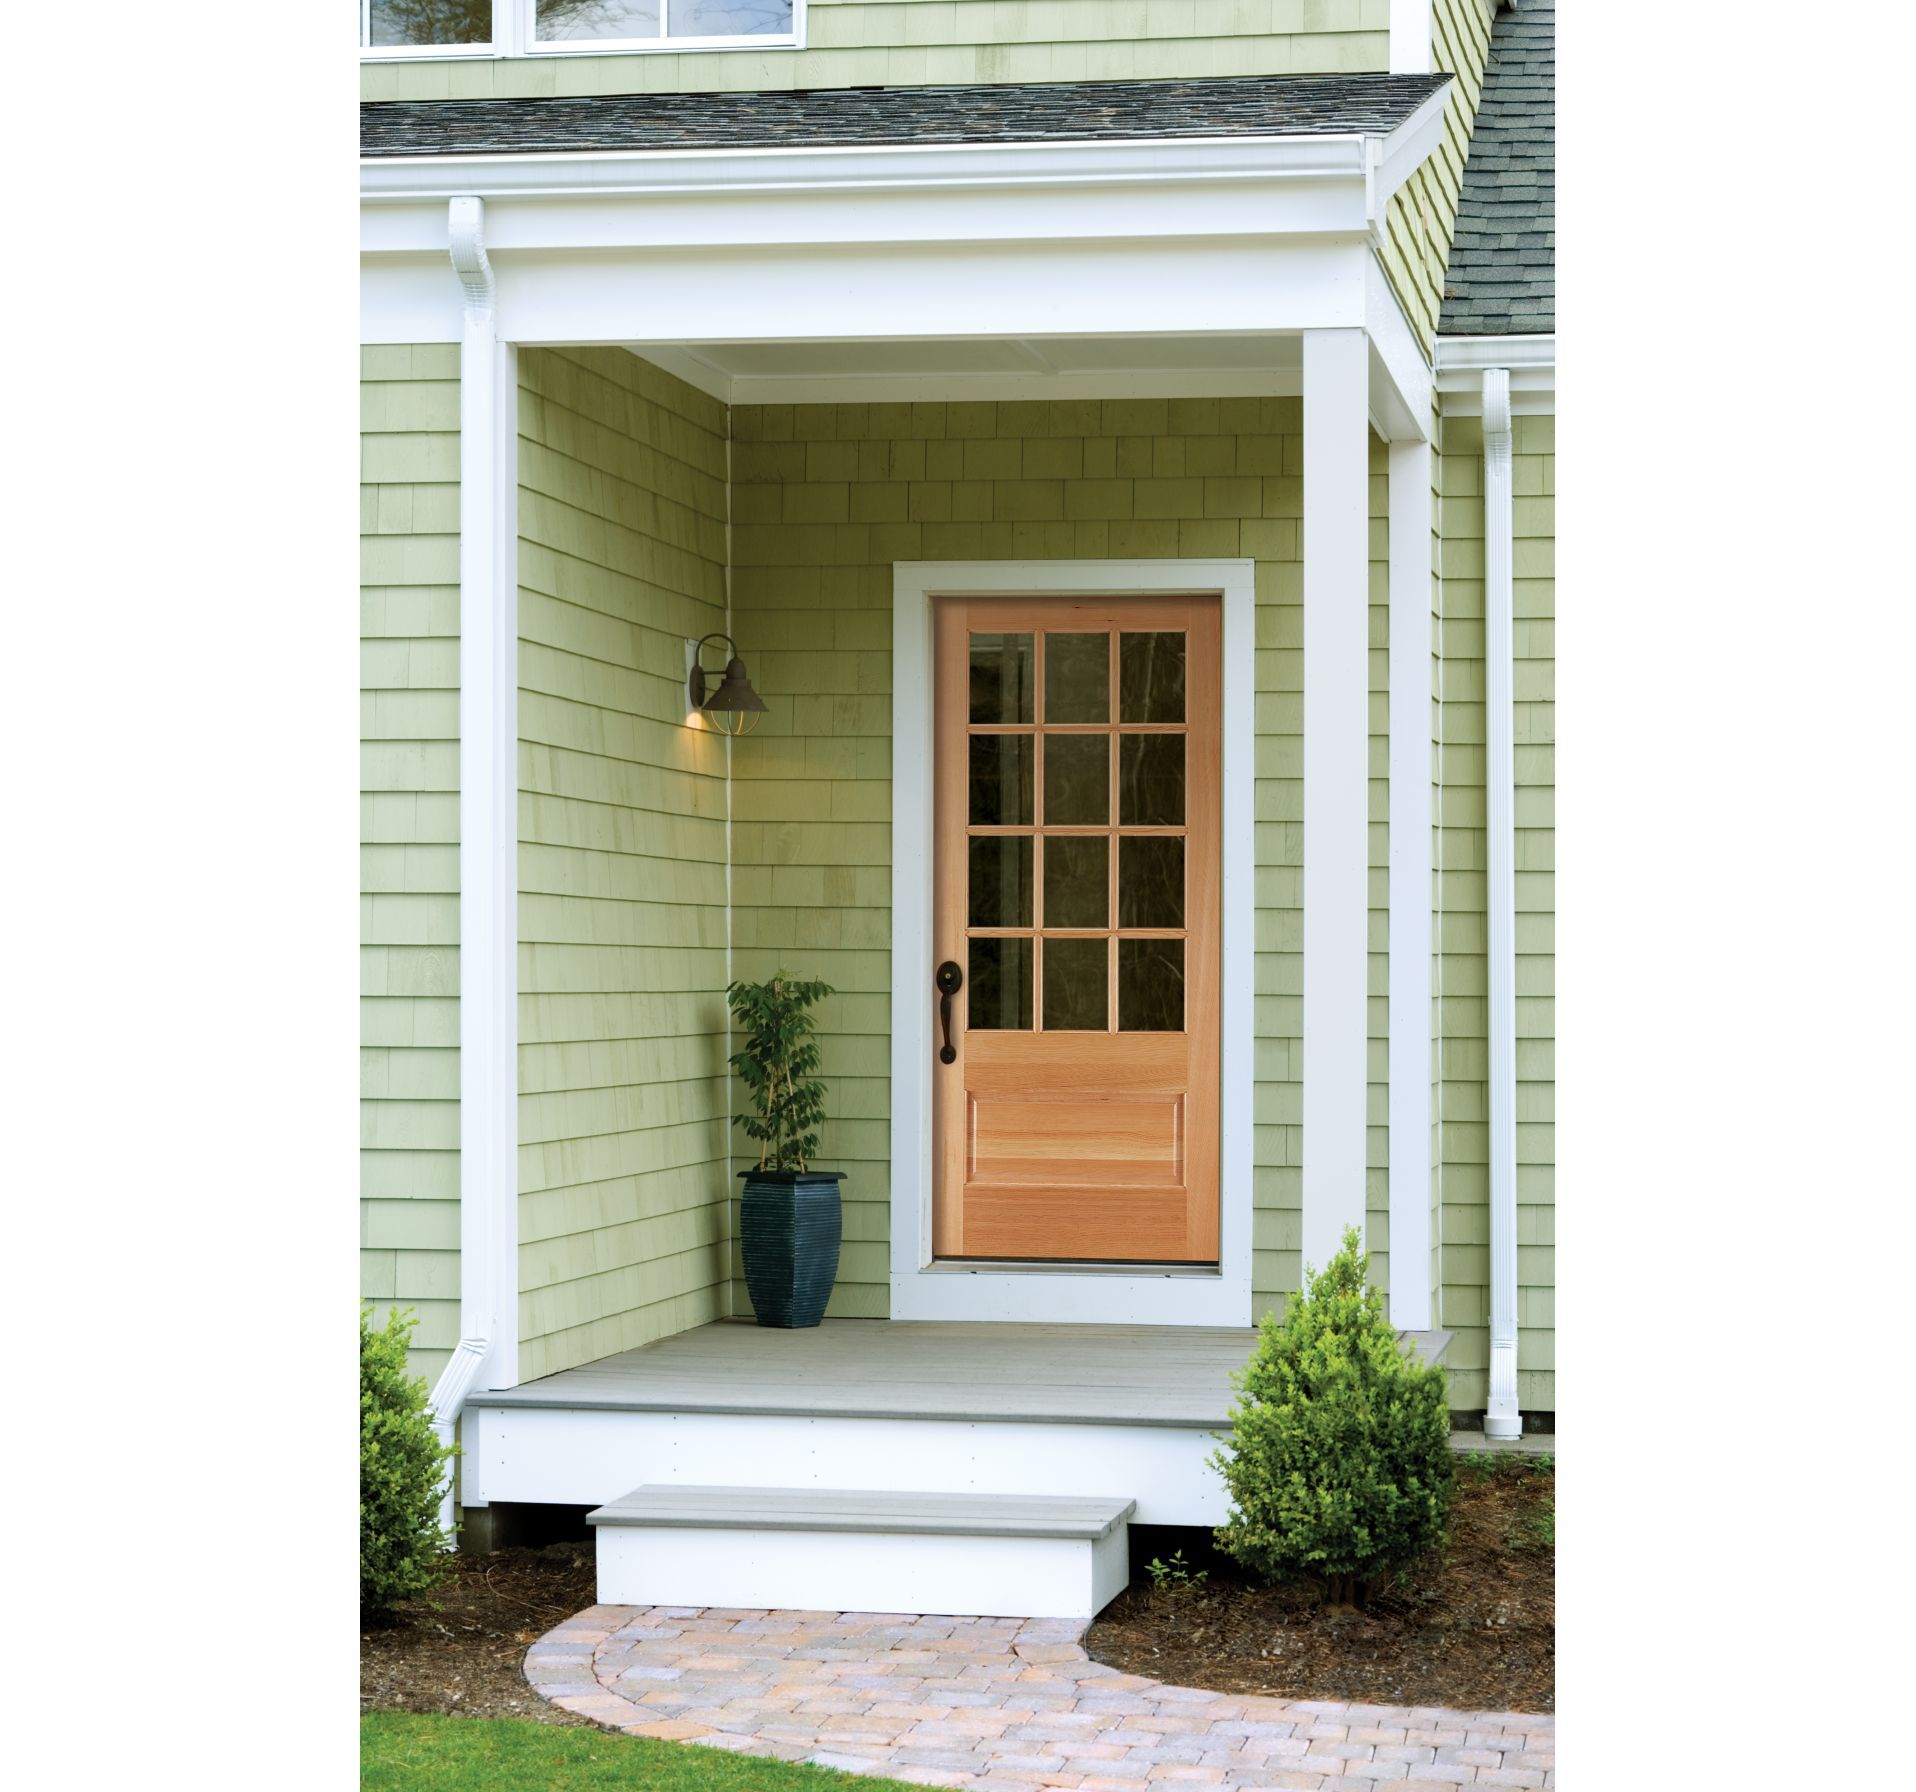 Exterior Door And Covered Porch